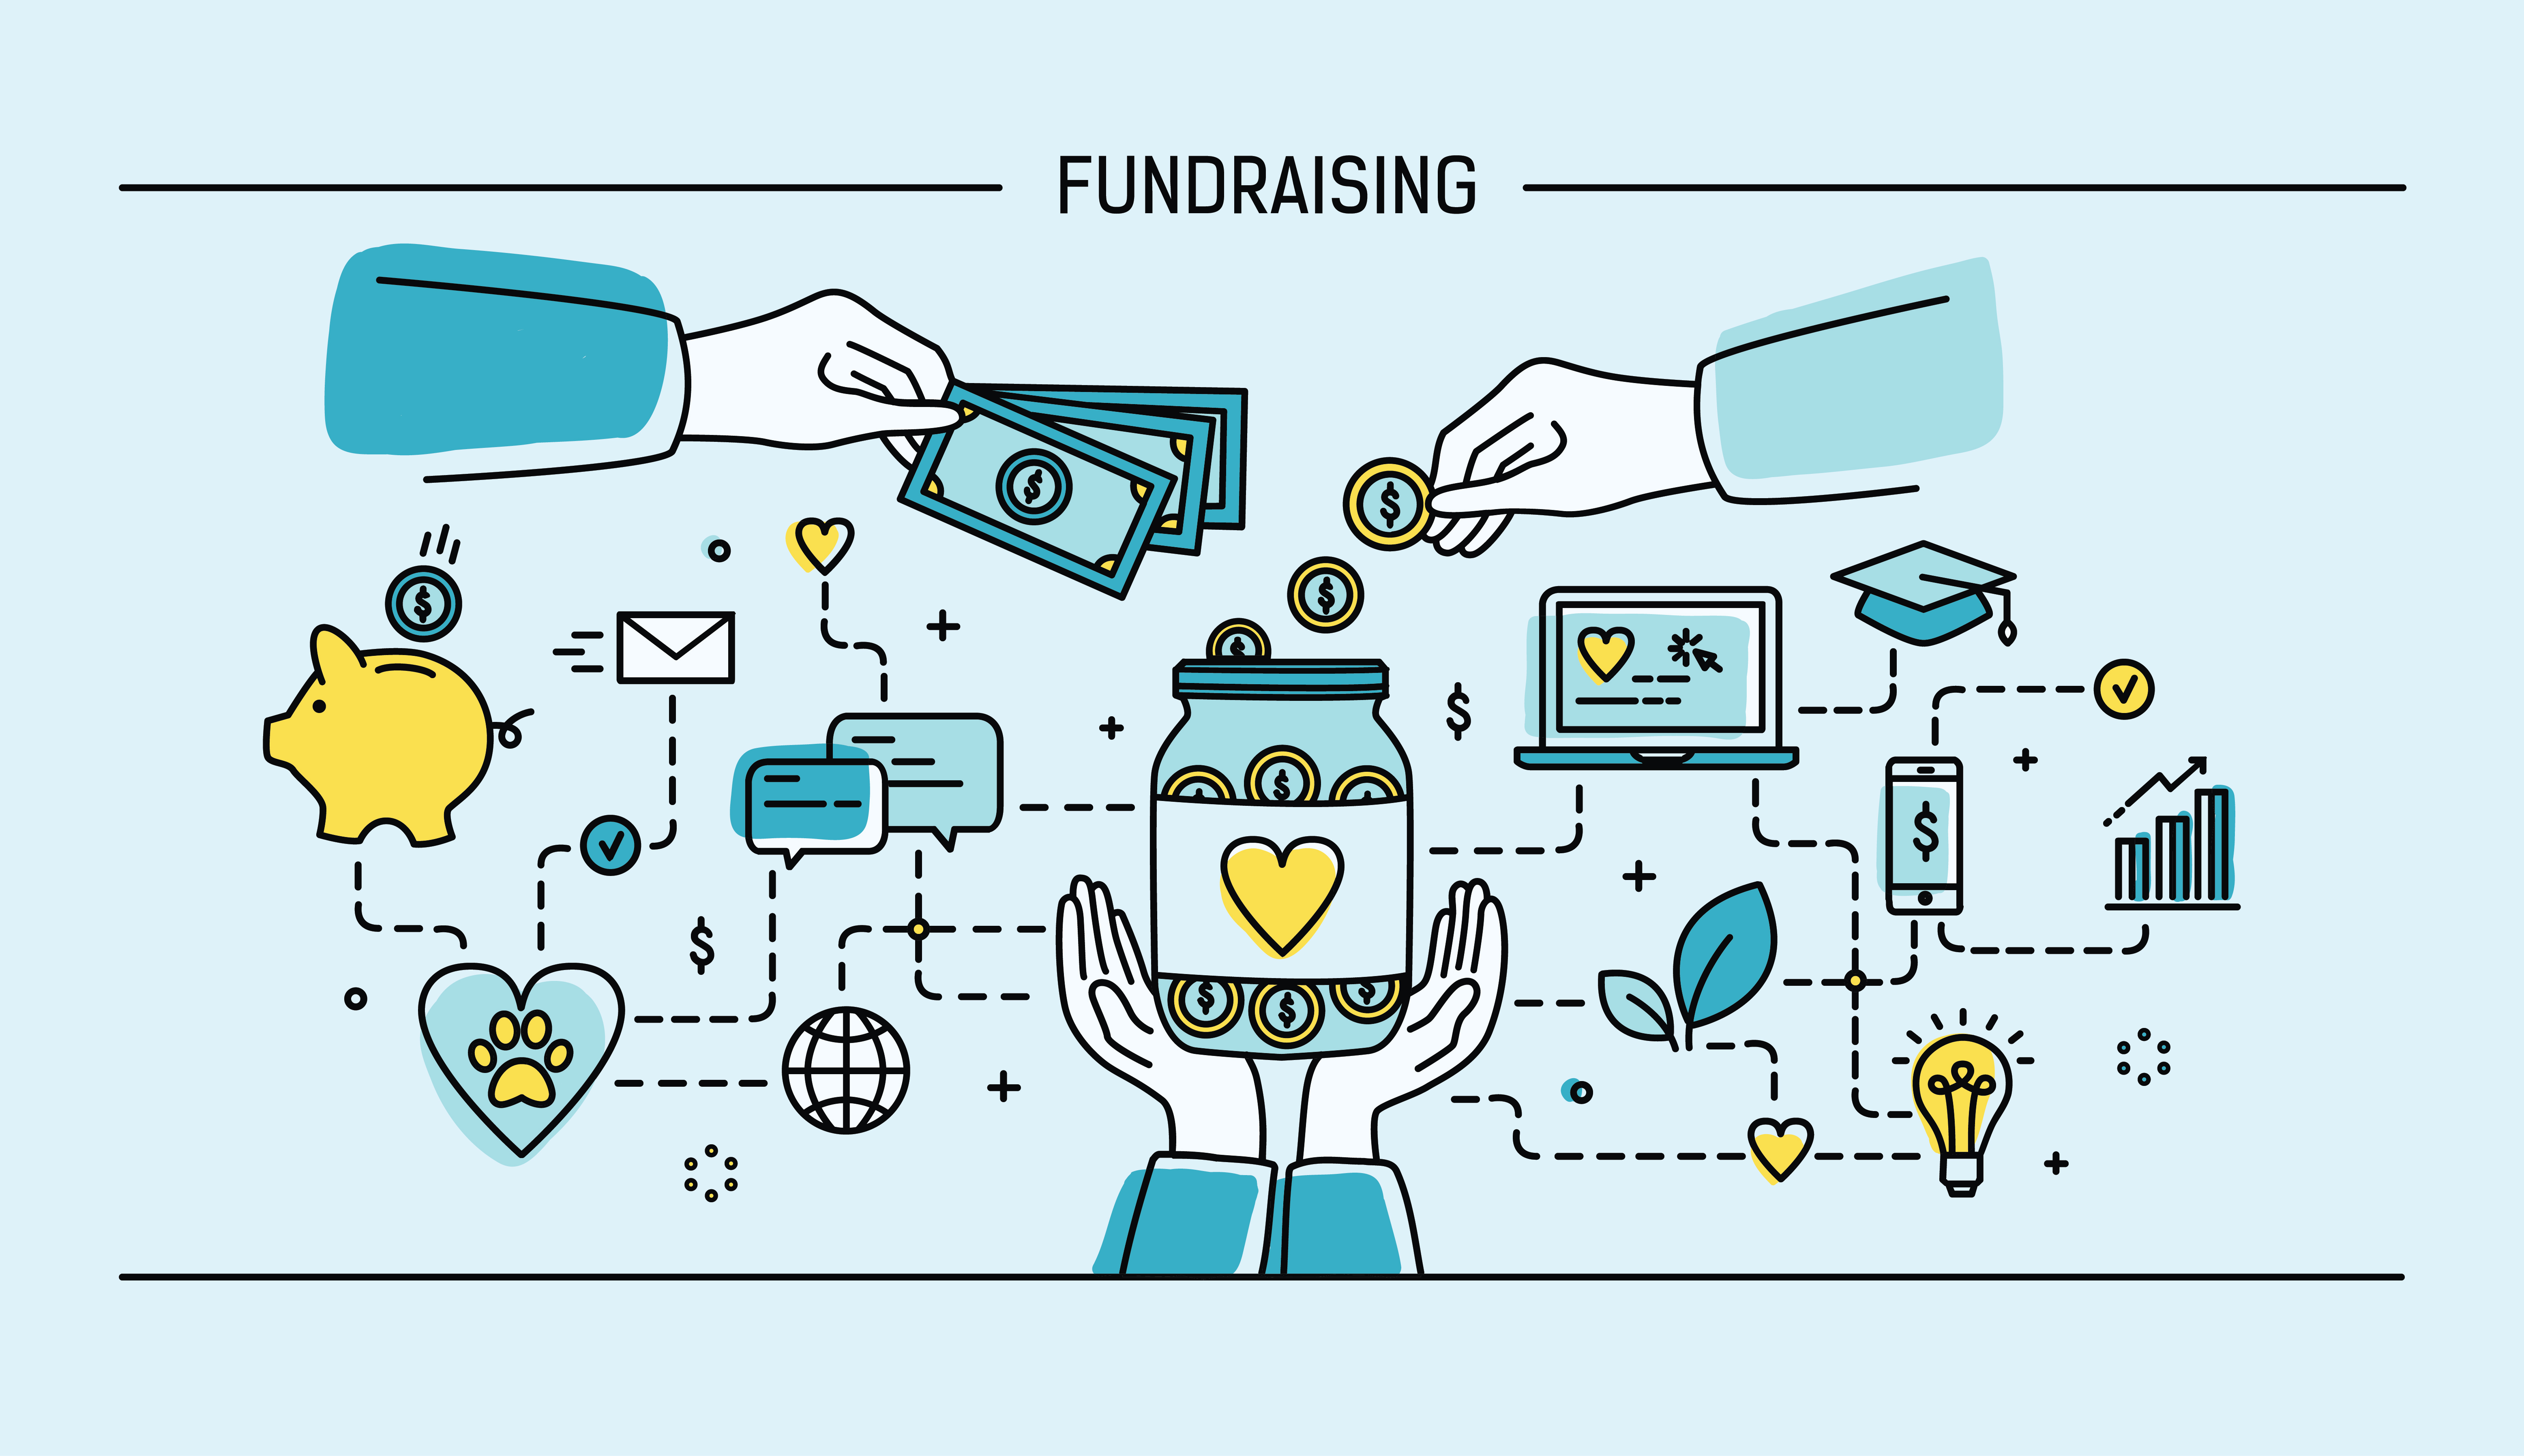 Instagram Rolling Out Fund-raising Feature for Non-profits and Humanitarian Causes